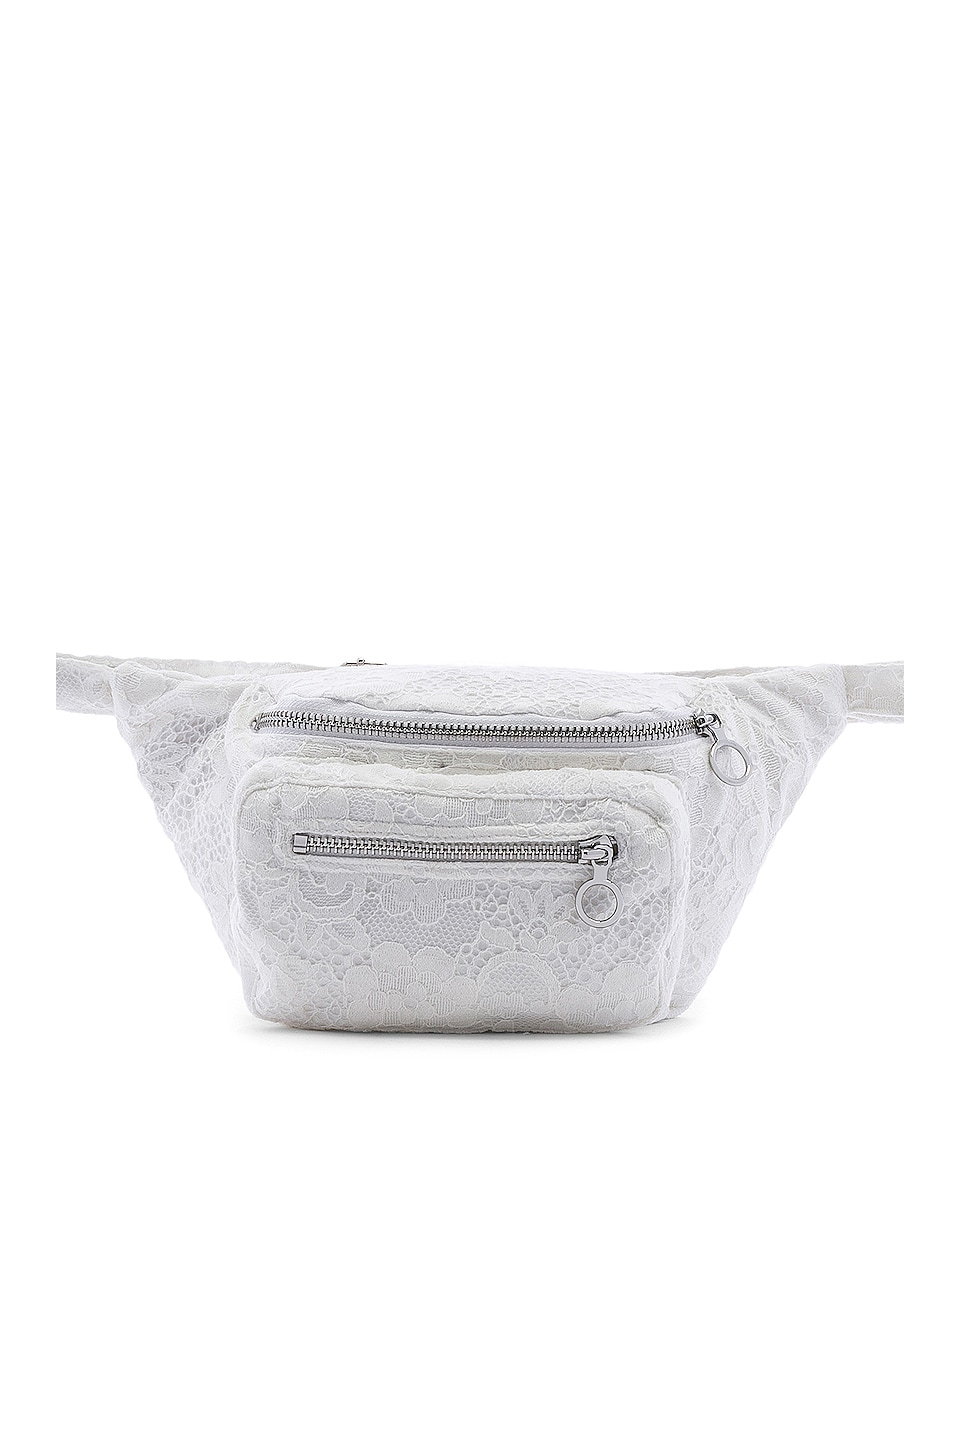 For Love & Lemons Cade Fanny Pack in White